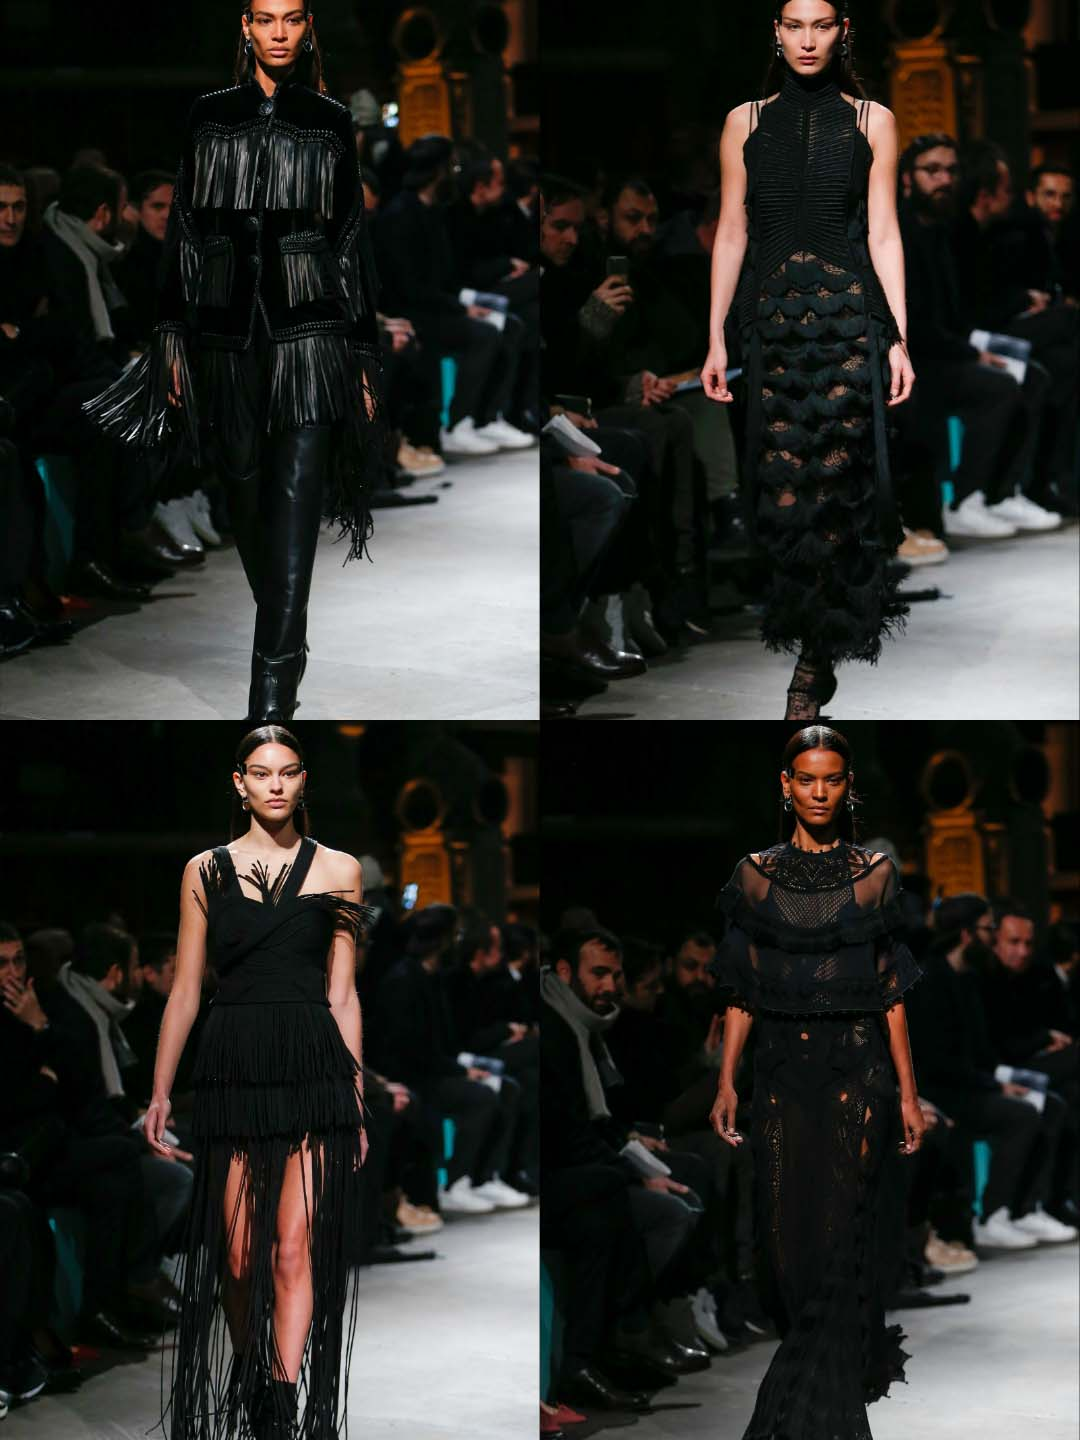 Eniwhere Fashion - Paris Haute Couture - Givenchy